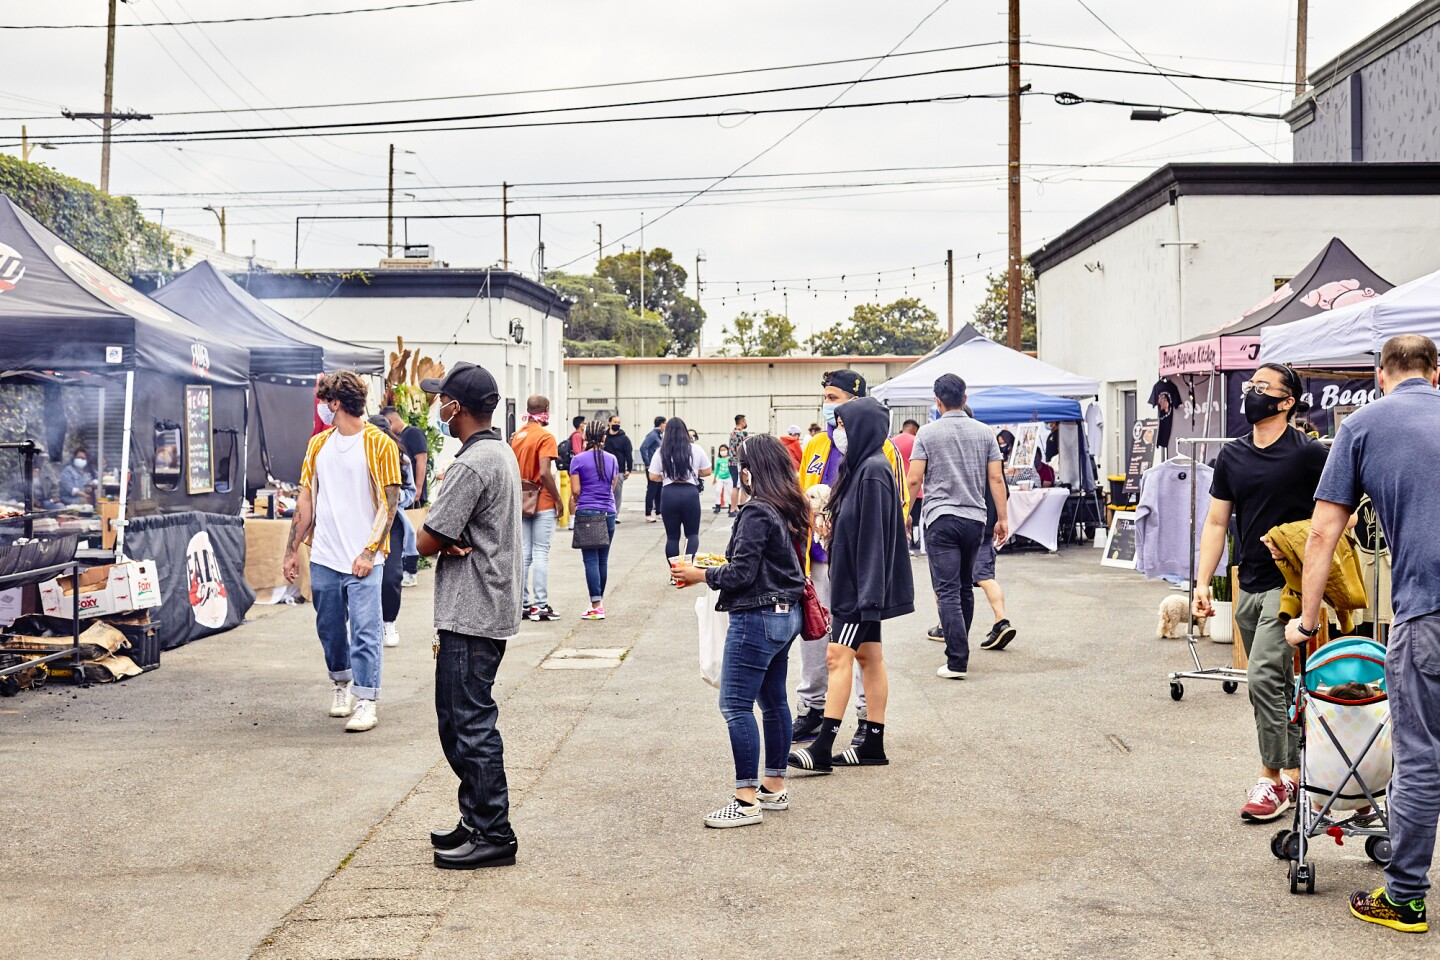 Attendees peruse and wait in line in between booths and tents at the FilLed Market, an outdoor market filled with curated Filipino American food and goods.